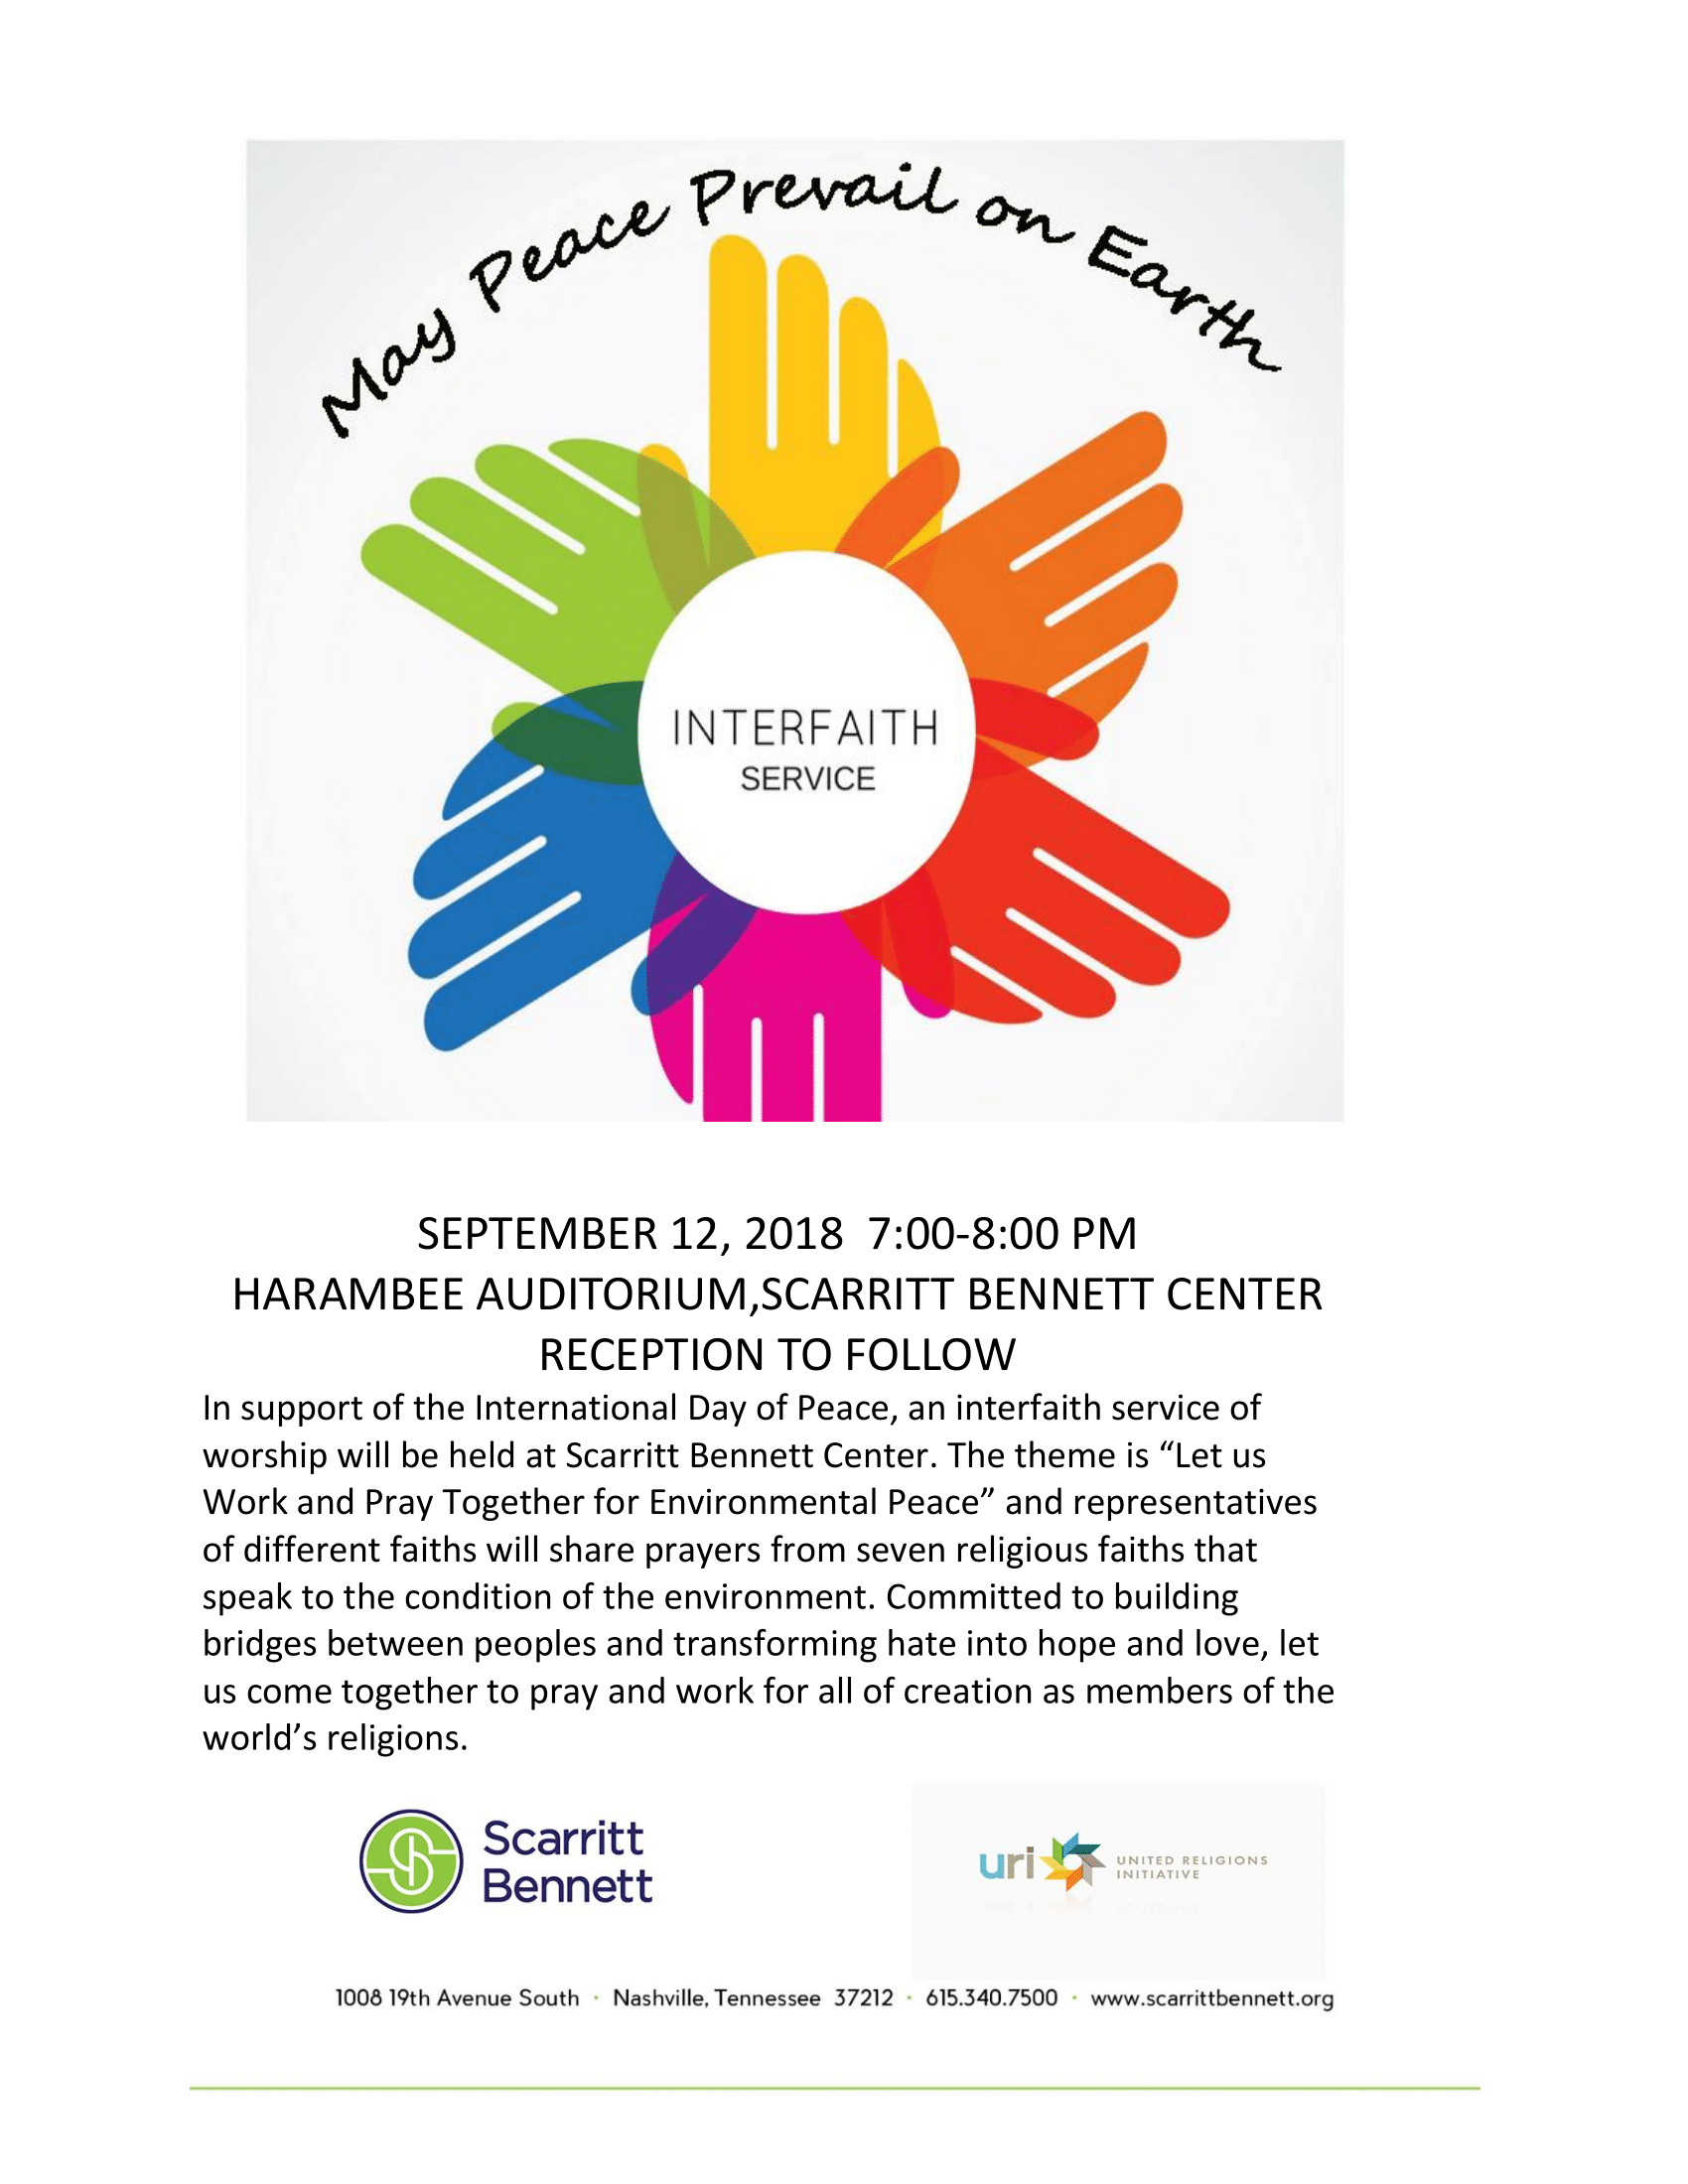 "SEPTEMBER 12, 2018 7:00-8:00 PM  HARAMBEE AUDITORIUM,SCARRITT BENNETT CENTER  RECEPTION TO FOLLOW  In support of the International Day of Peace, an interfaith service of worship will be held at Scarritt Bennett Center. The theme is ""Let us Work and Pray Together for Environmental Peace"" and representatives of different faiths will share prayers from seven religious faiths that speak to the condition of the environment. Committed to building bridges between peoples and transforming hate into hope and love, let us come together to pray and work for all of creation as members of the world's religions."